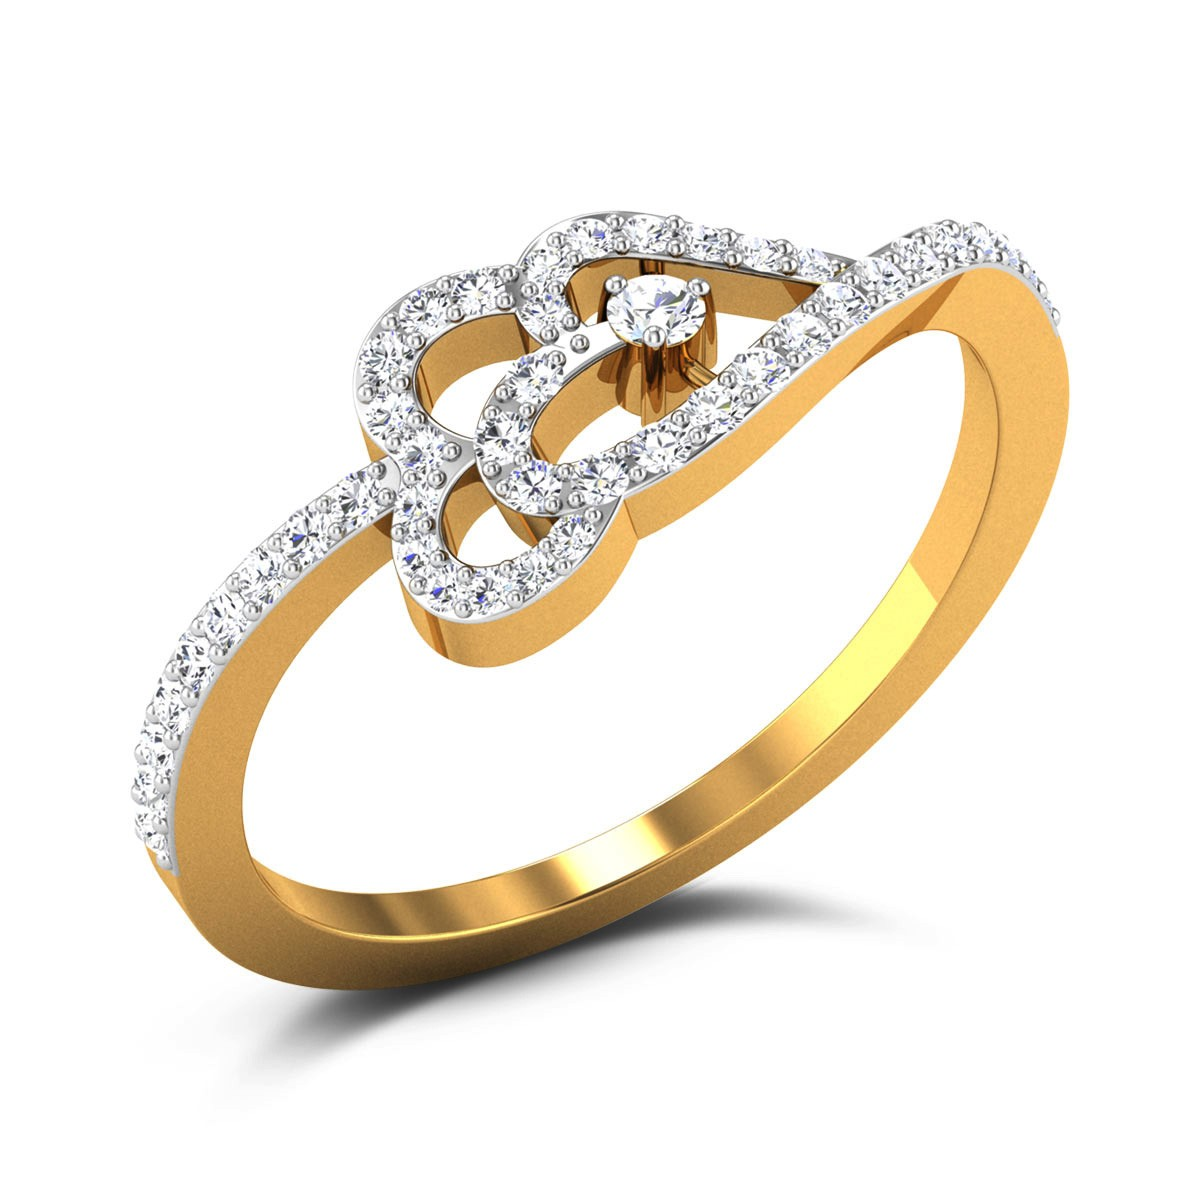 Buy Shania Hearts Diamond Ring in 1.9 Grams Gold Online